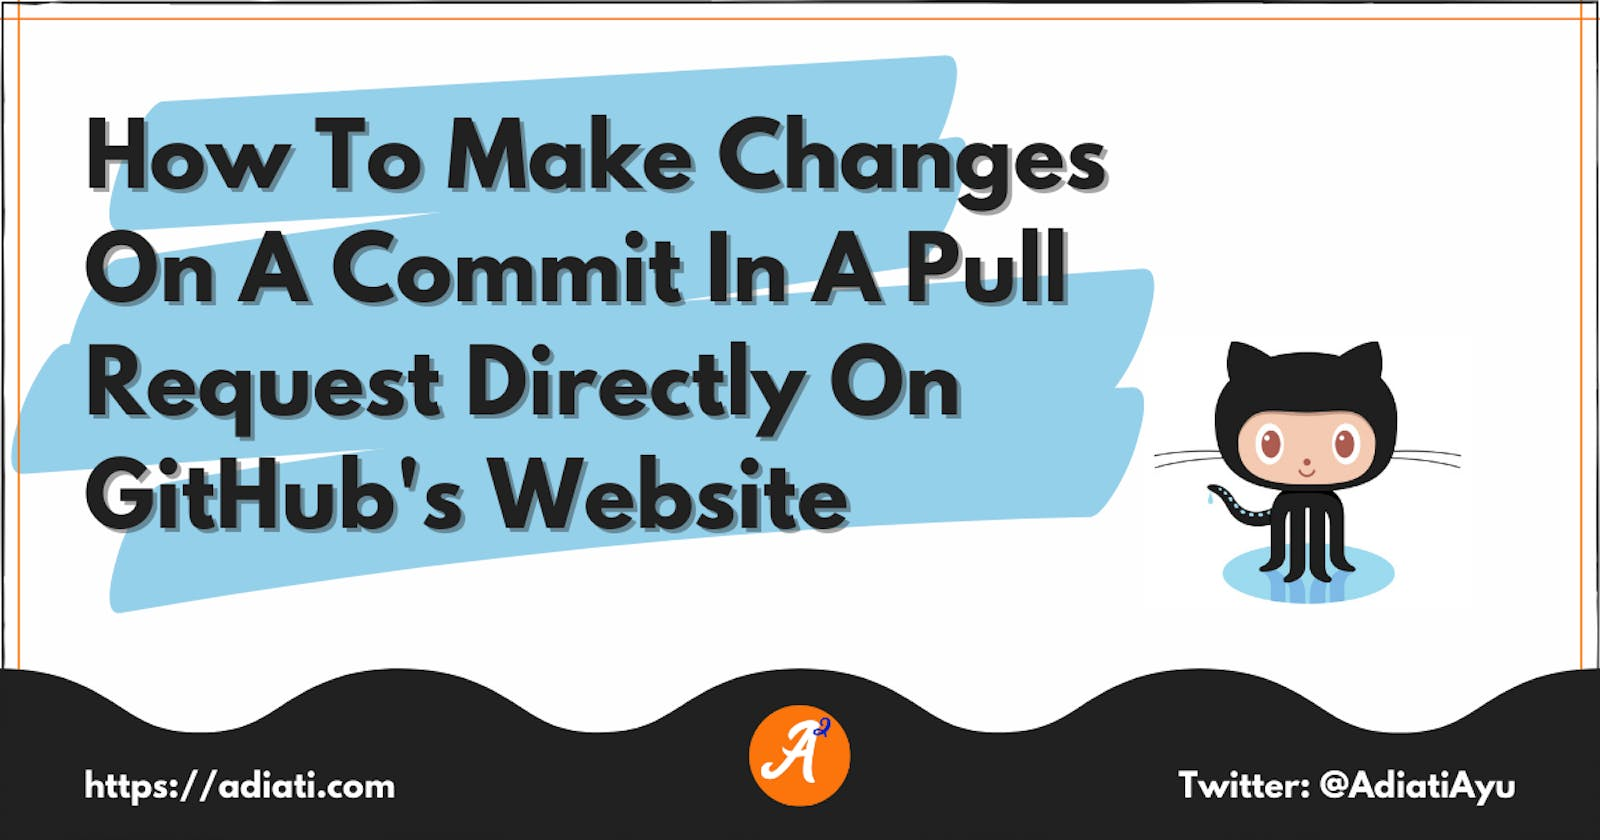 How To Make Changes On A Commit In A Pull Request Directly On GitHub's Website